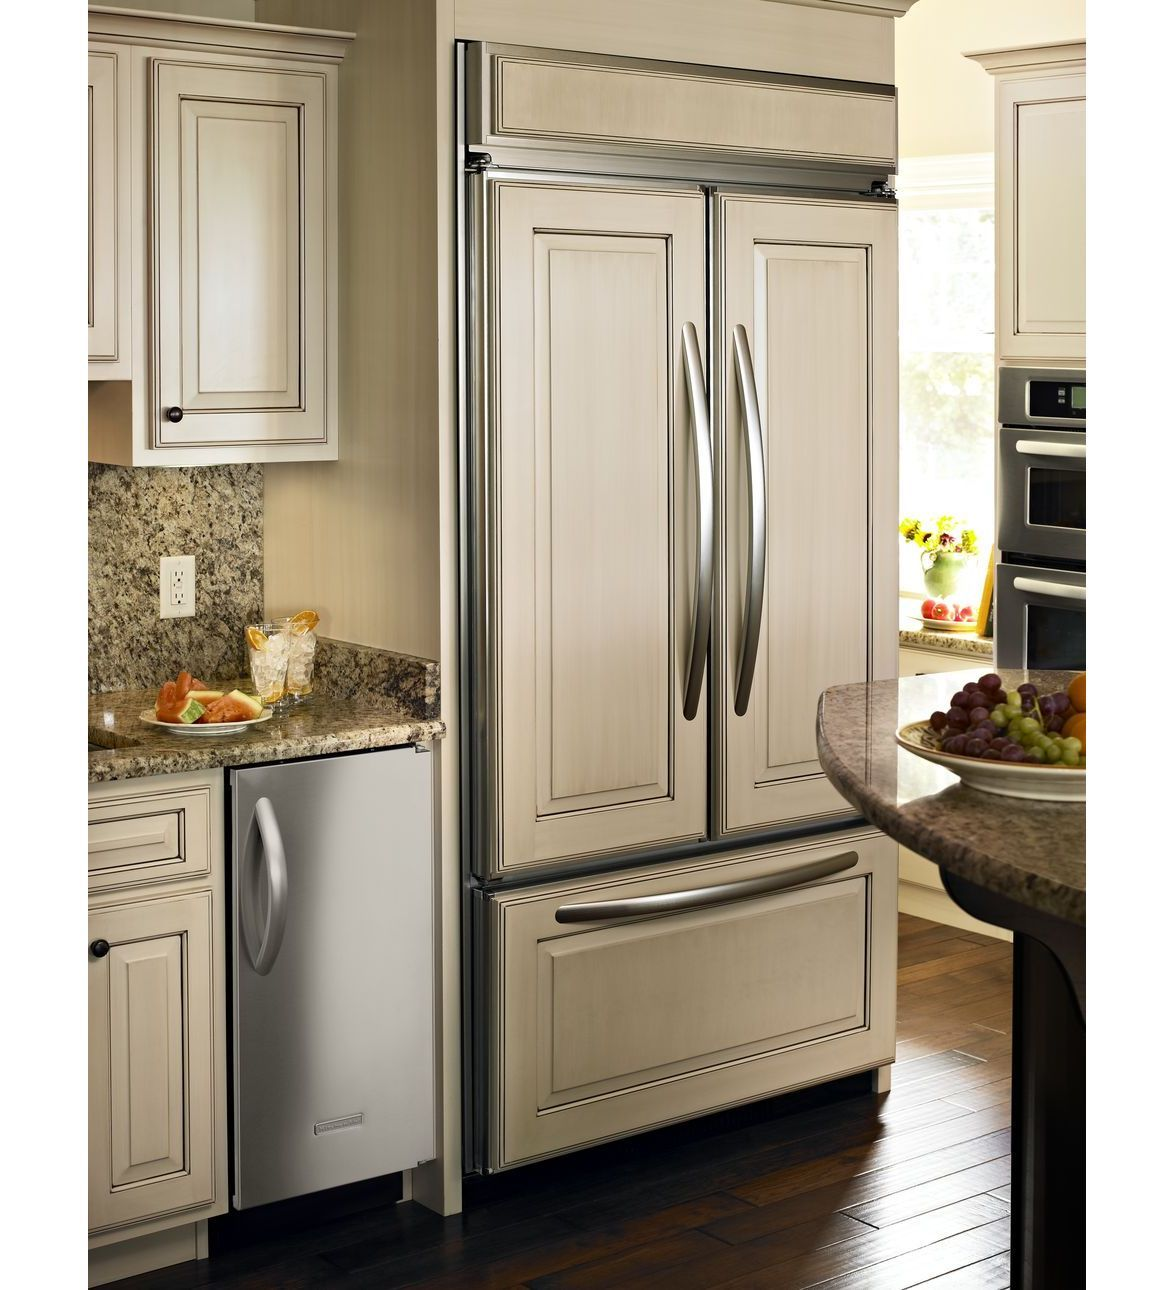 architect series ii built in refrigerator handle kit french door rh pinterest com